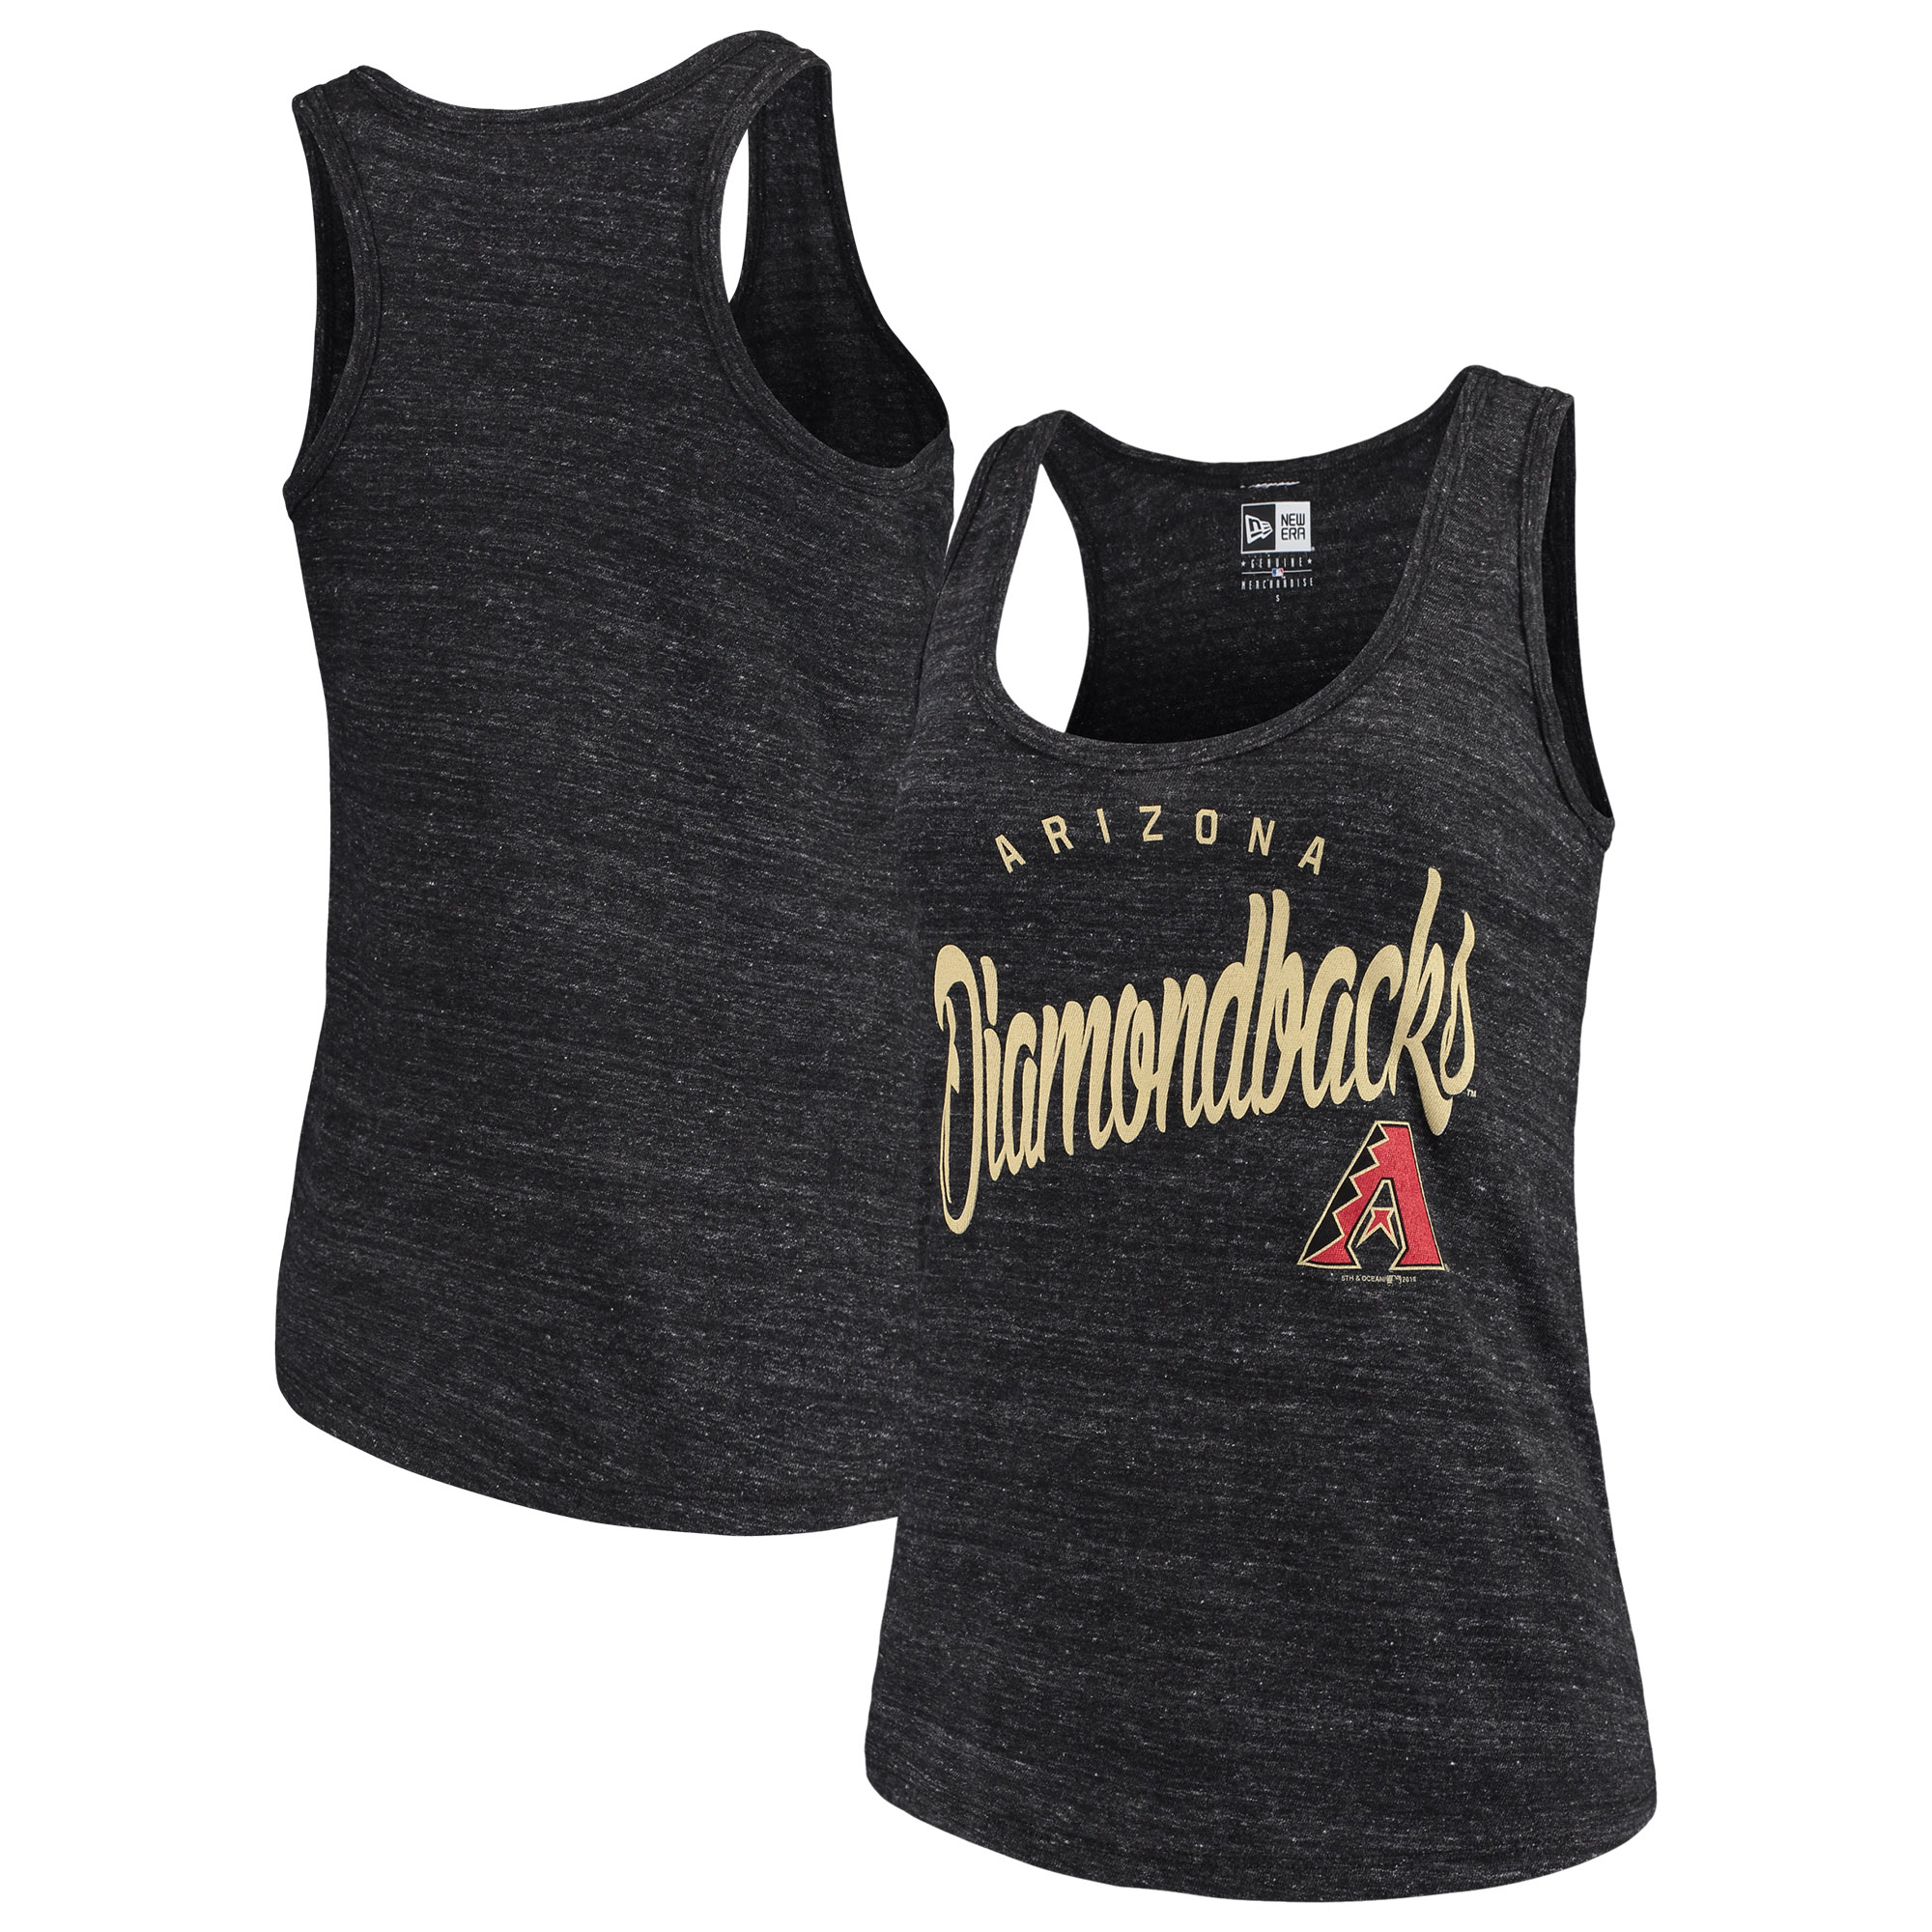 Arizona Diamondbacks 5th & Ocean by New Era Women's Tri-Blend Racerback Tank Top - Black Onyx